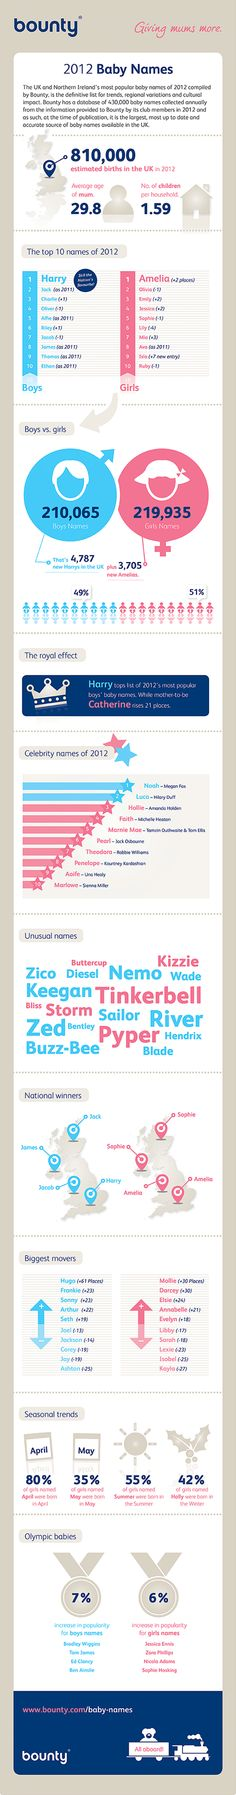 Baby Names Infographic from Bounty